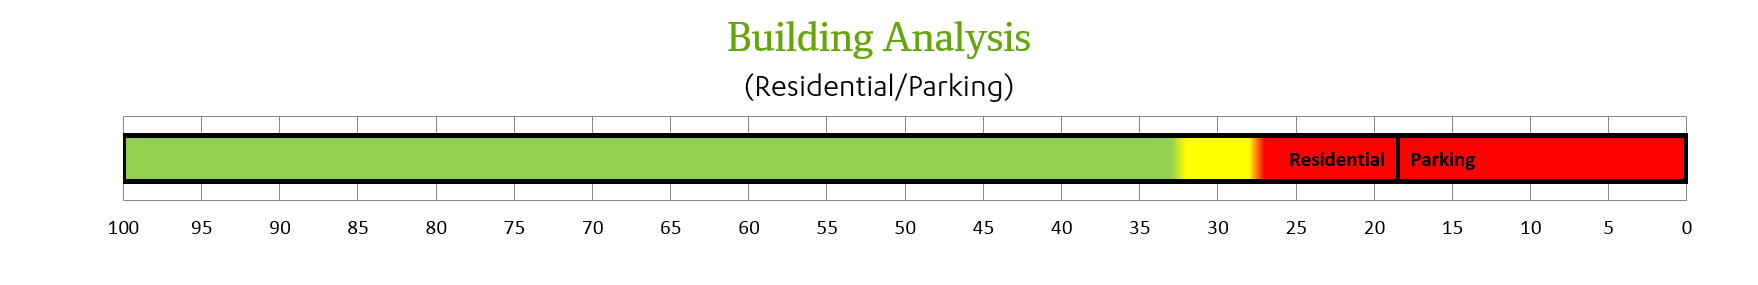 Building analysis